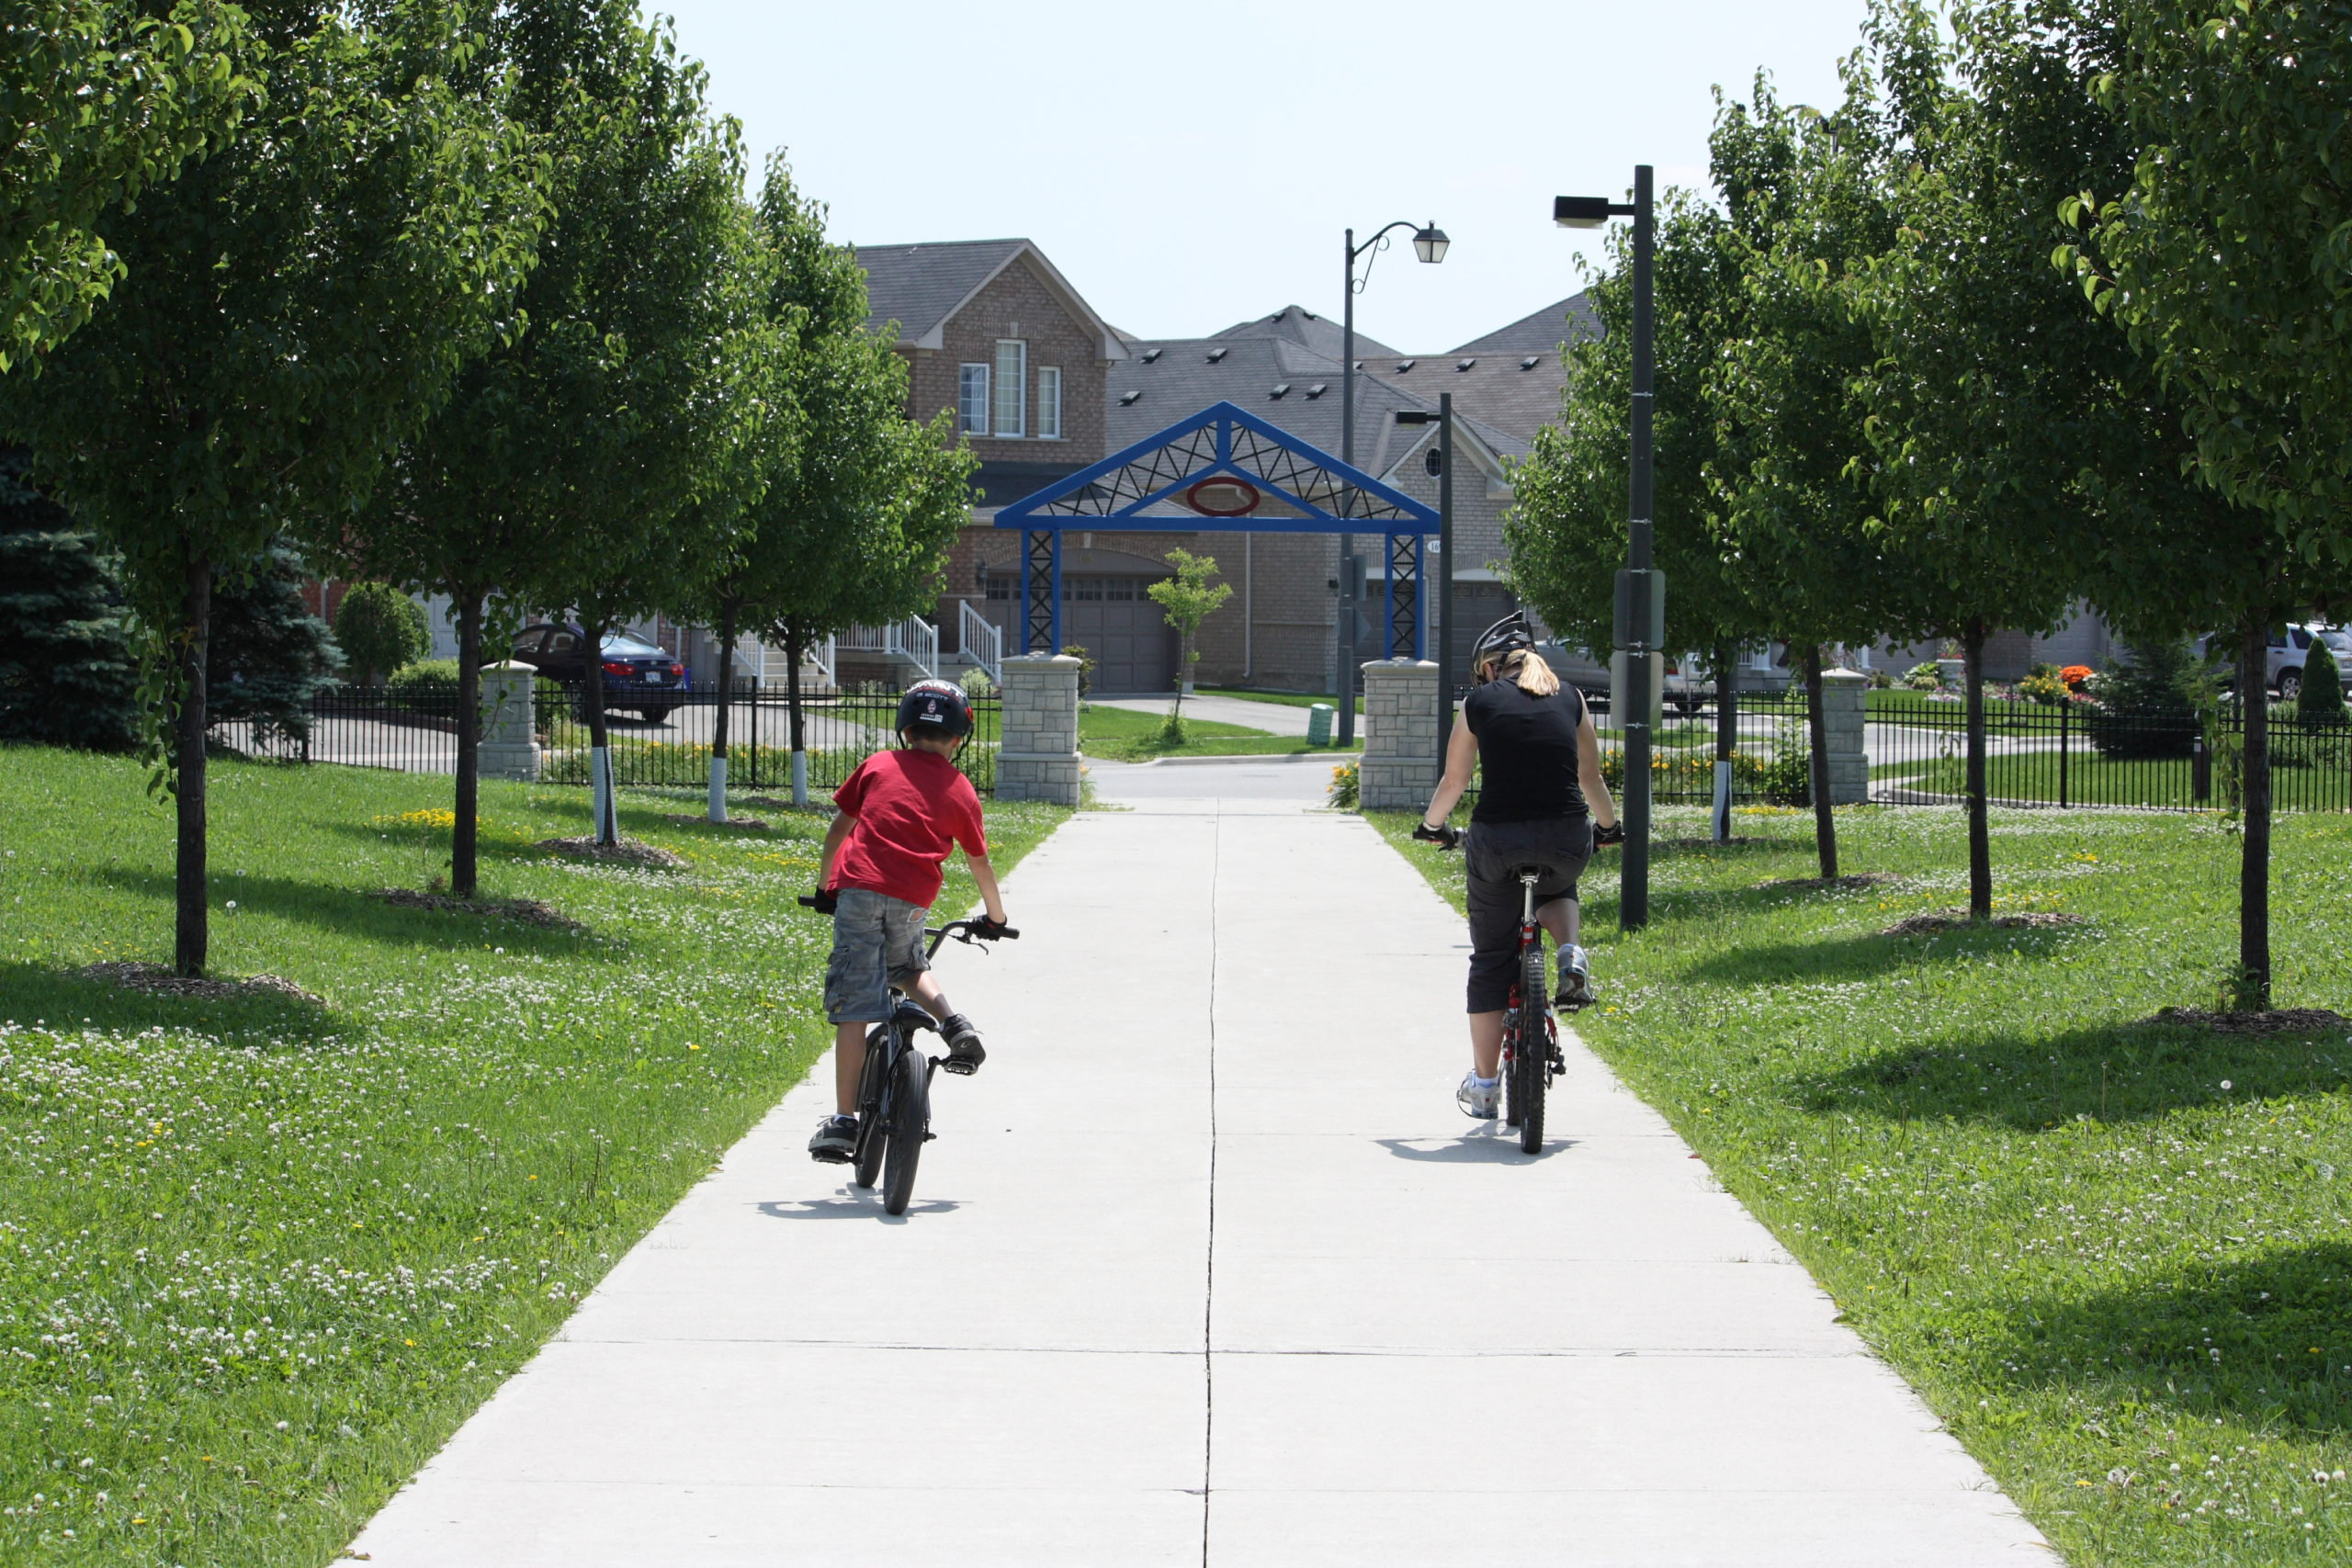 People bicycling on a path through the park.